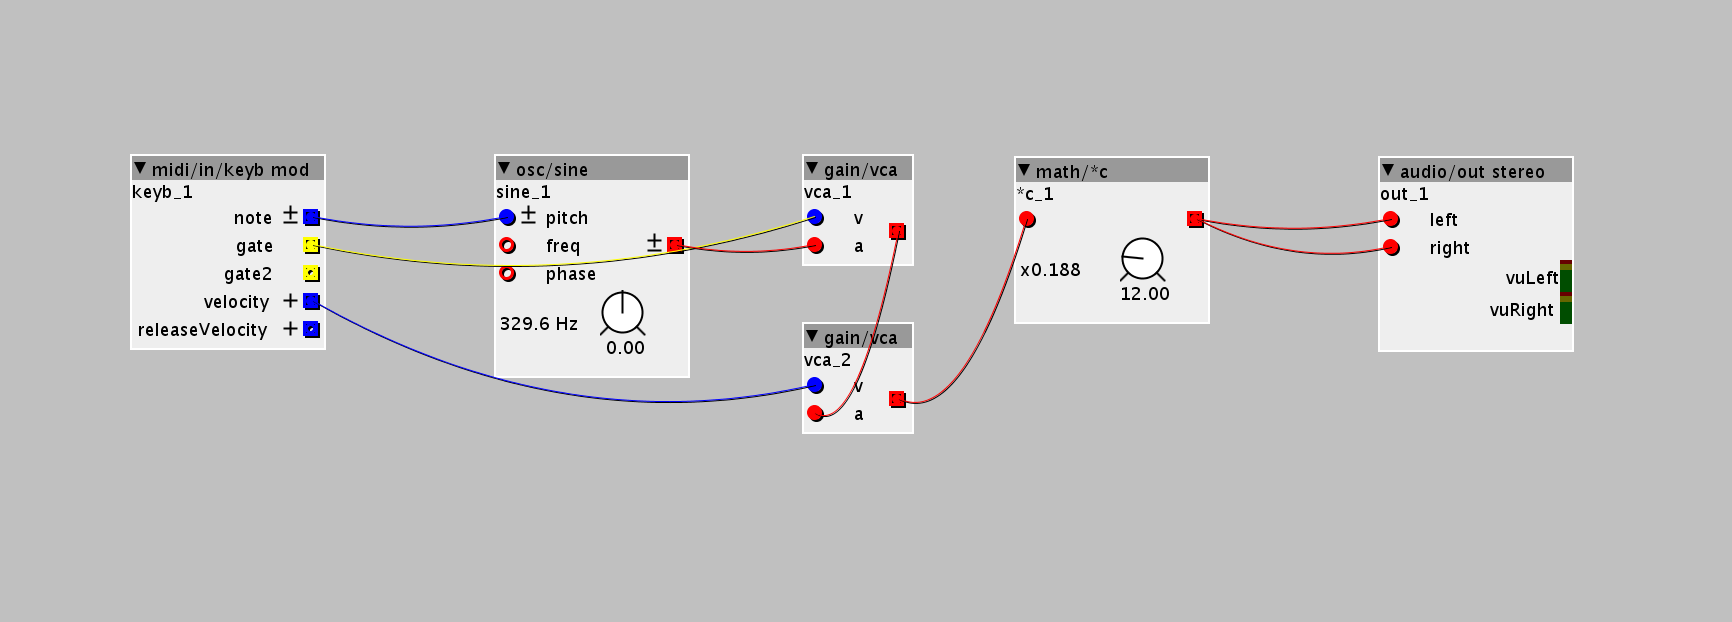 Figure 1.7 — Velocity functionality was implemented in the patch.